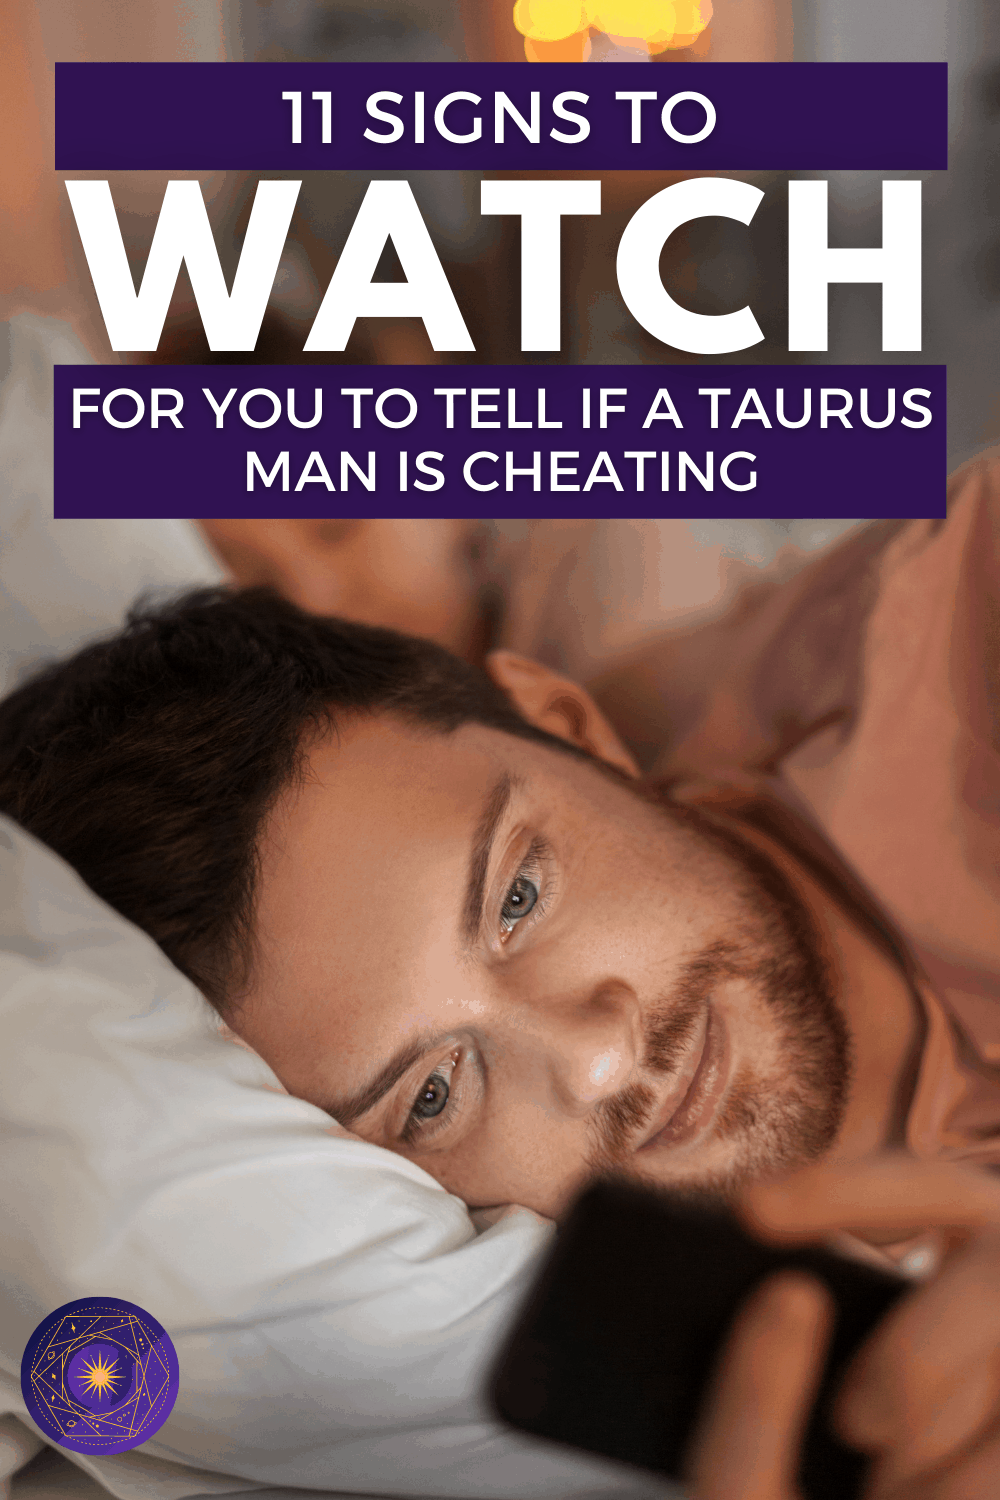 11 Signs A Taurus Man Is Cheating